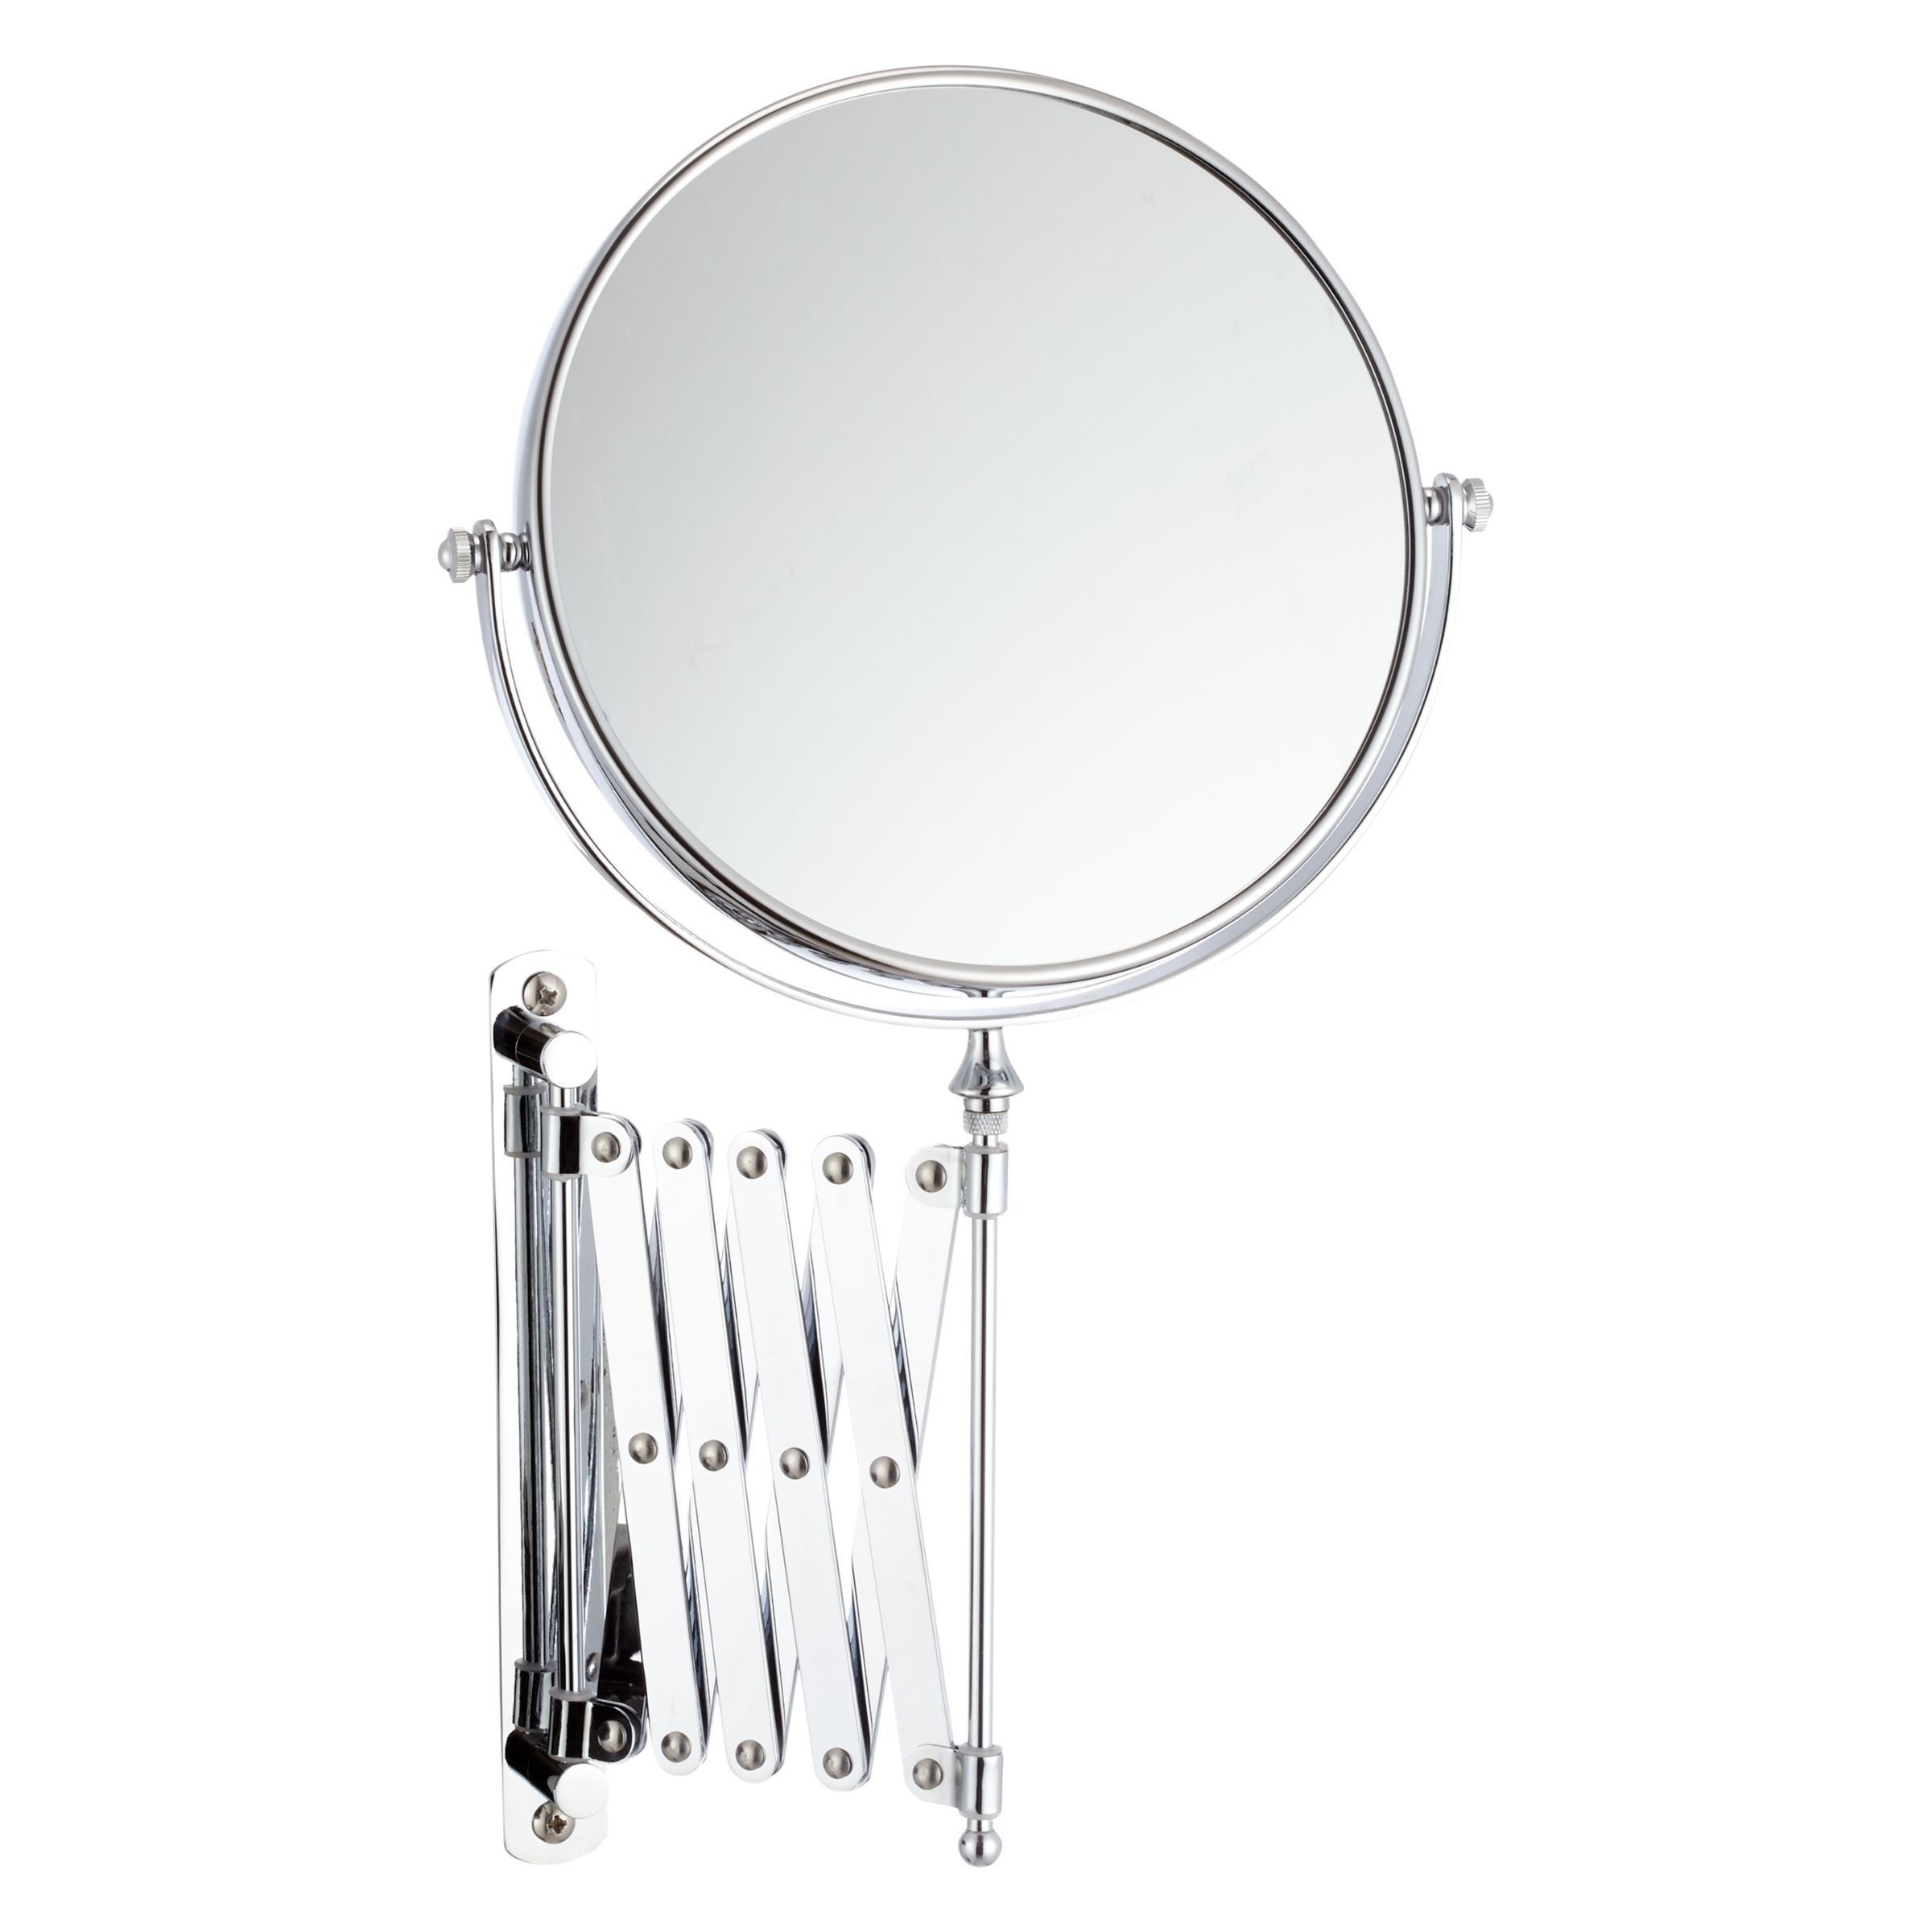 Bathroom Extension Mirrors Mirror With Extension Arm Zef Jam